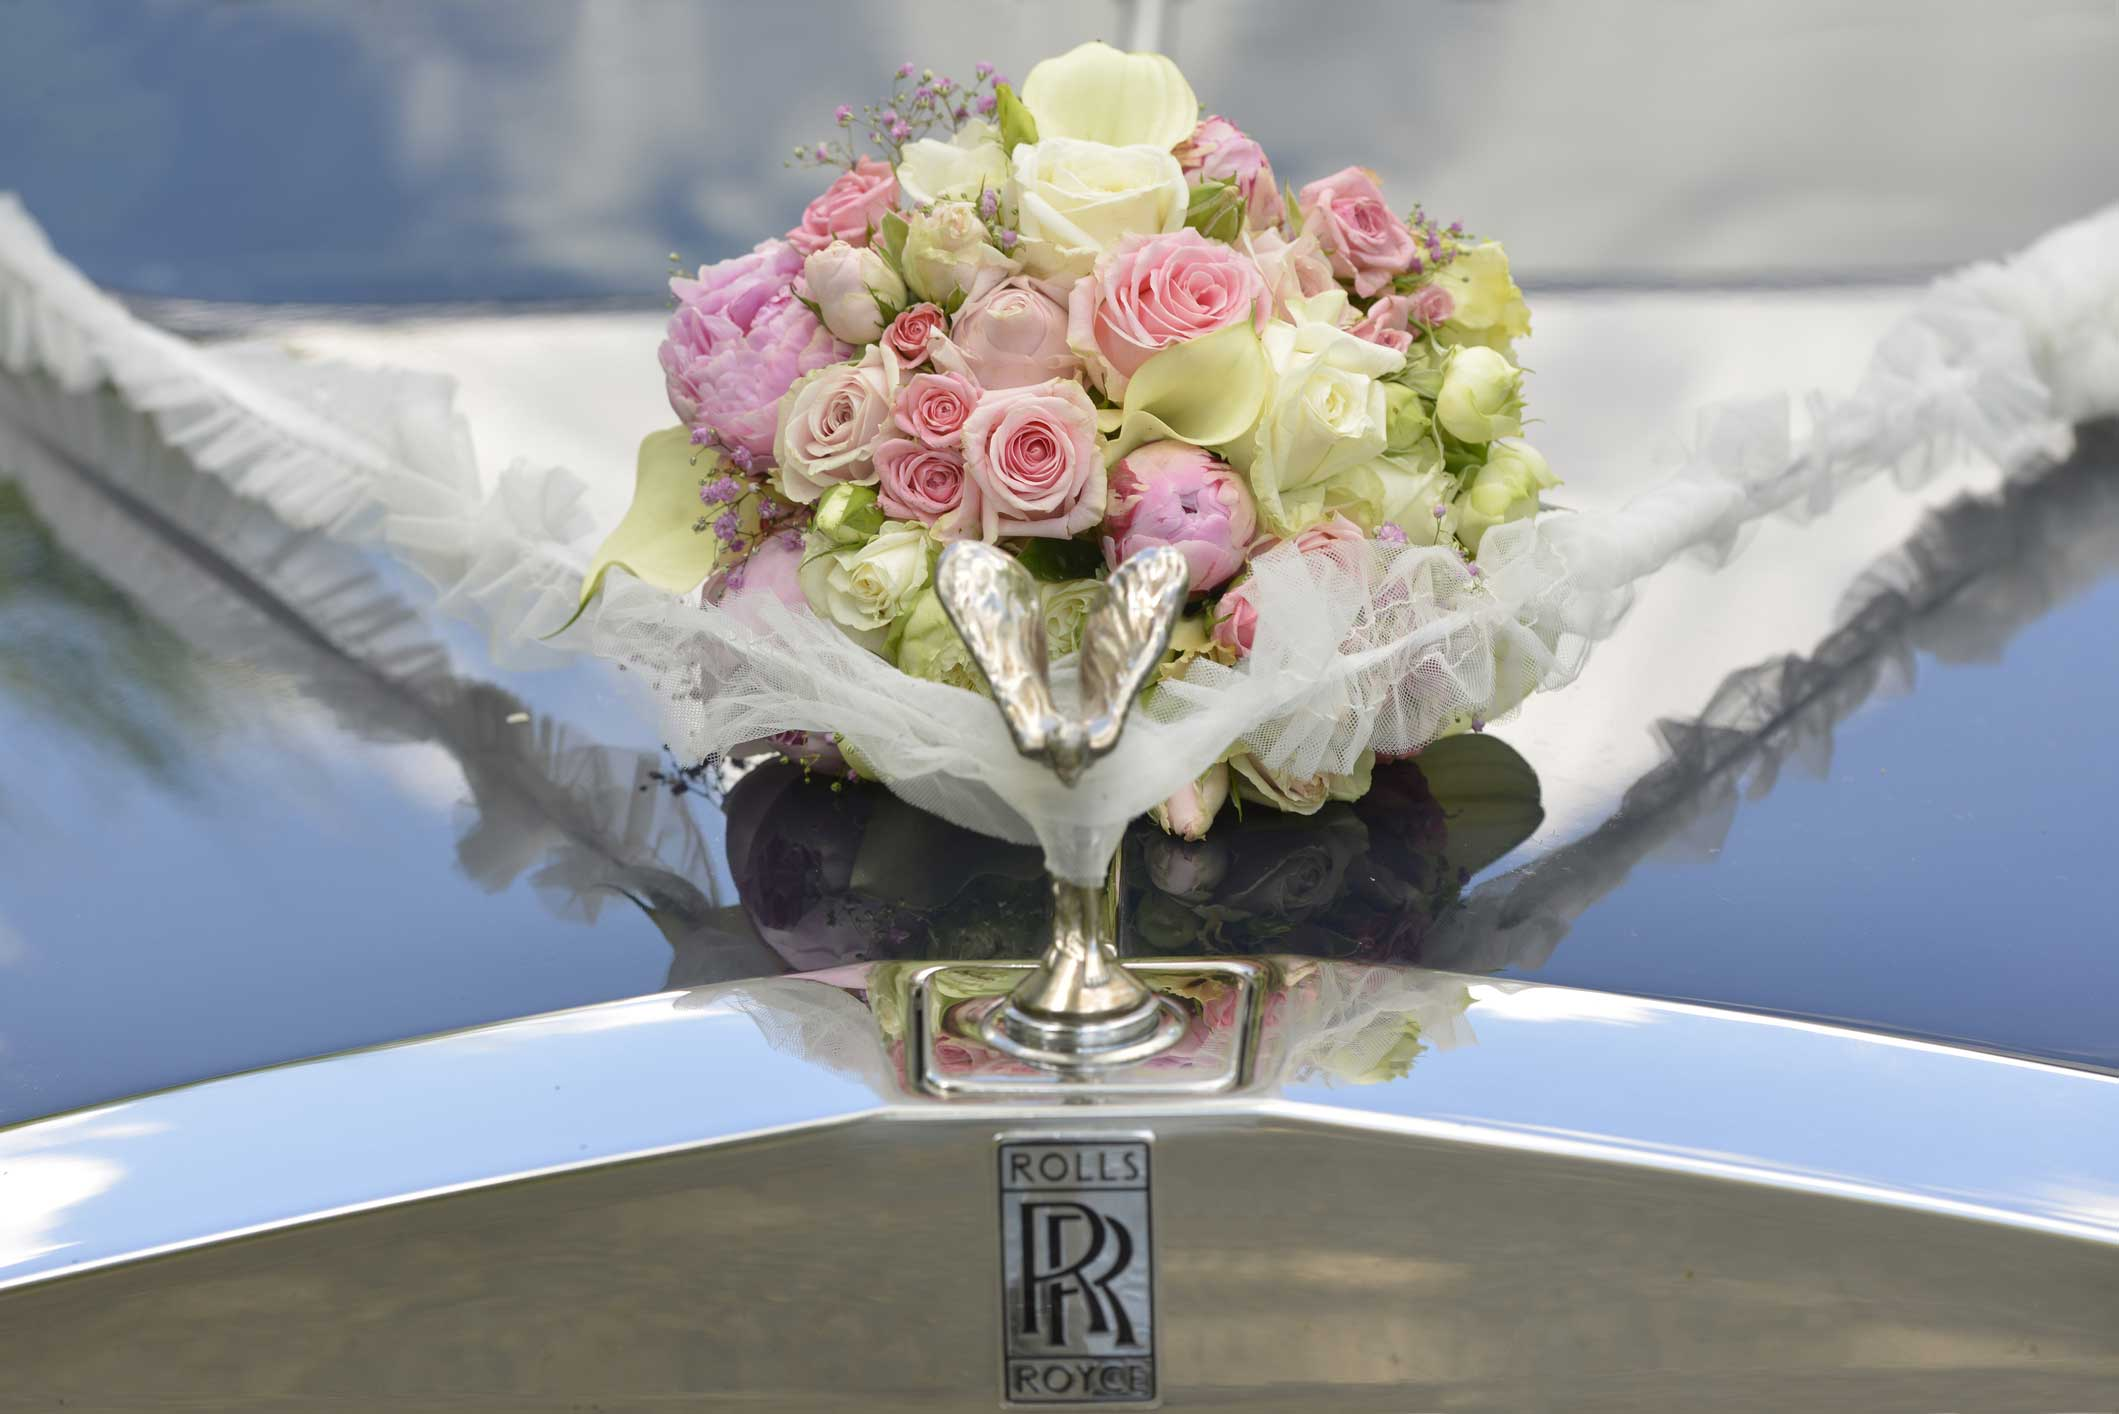 bouquet on hood of rolls